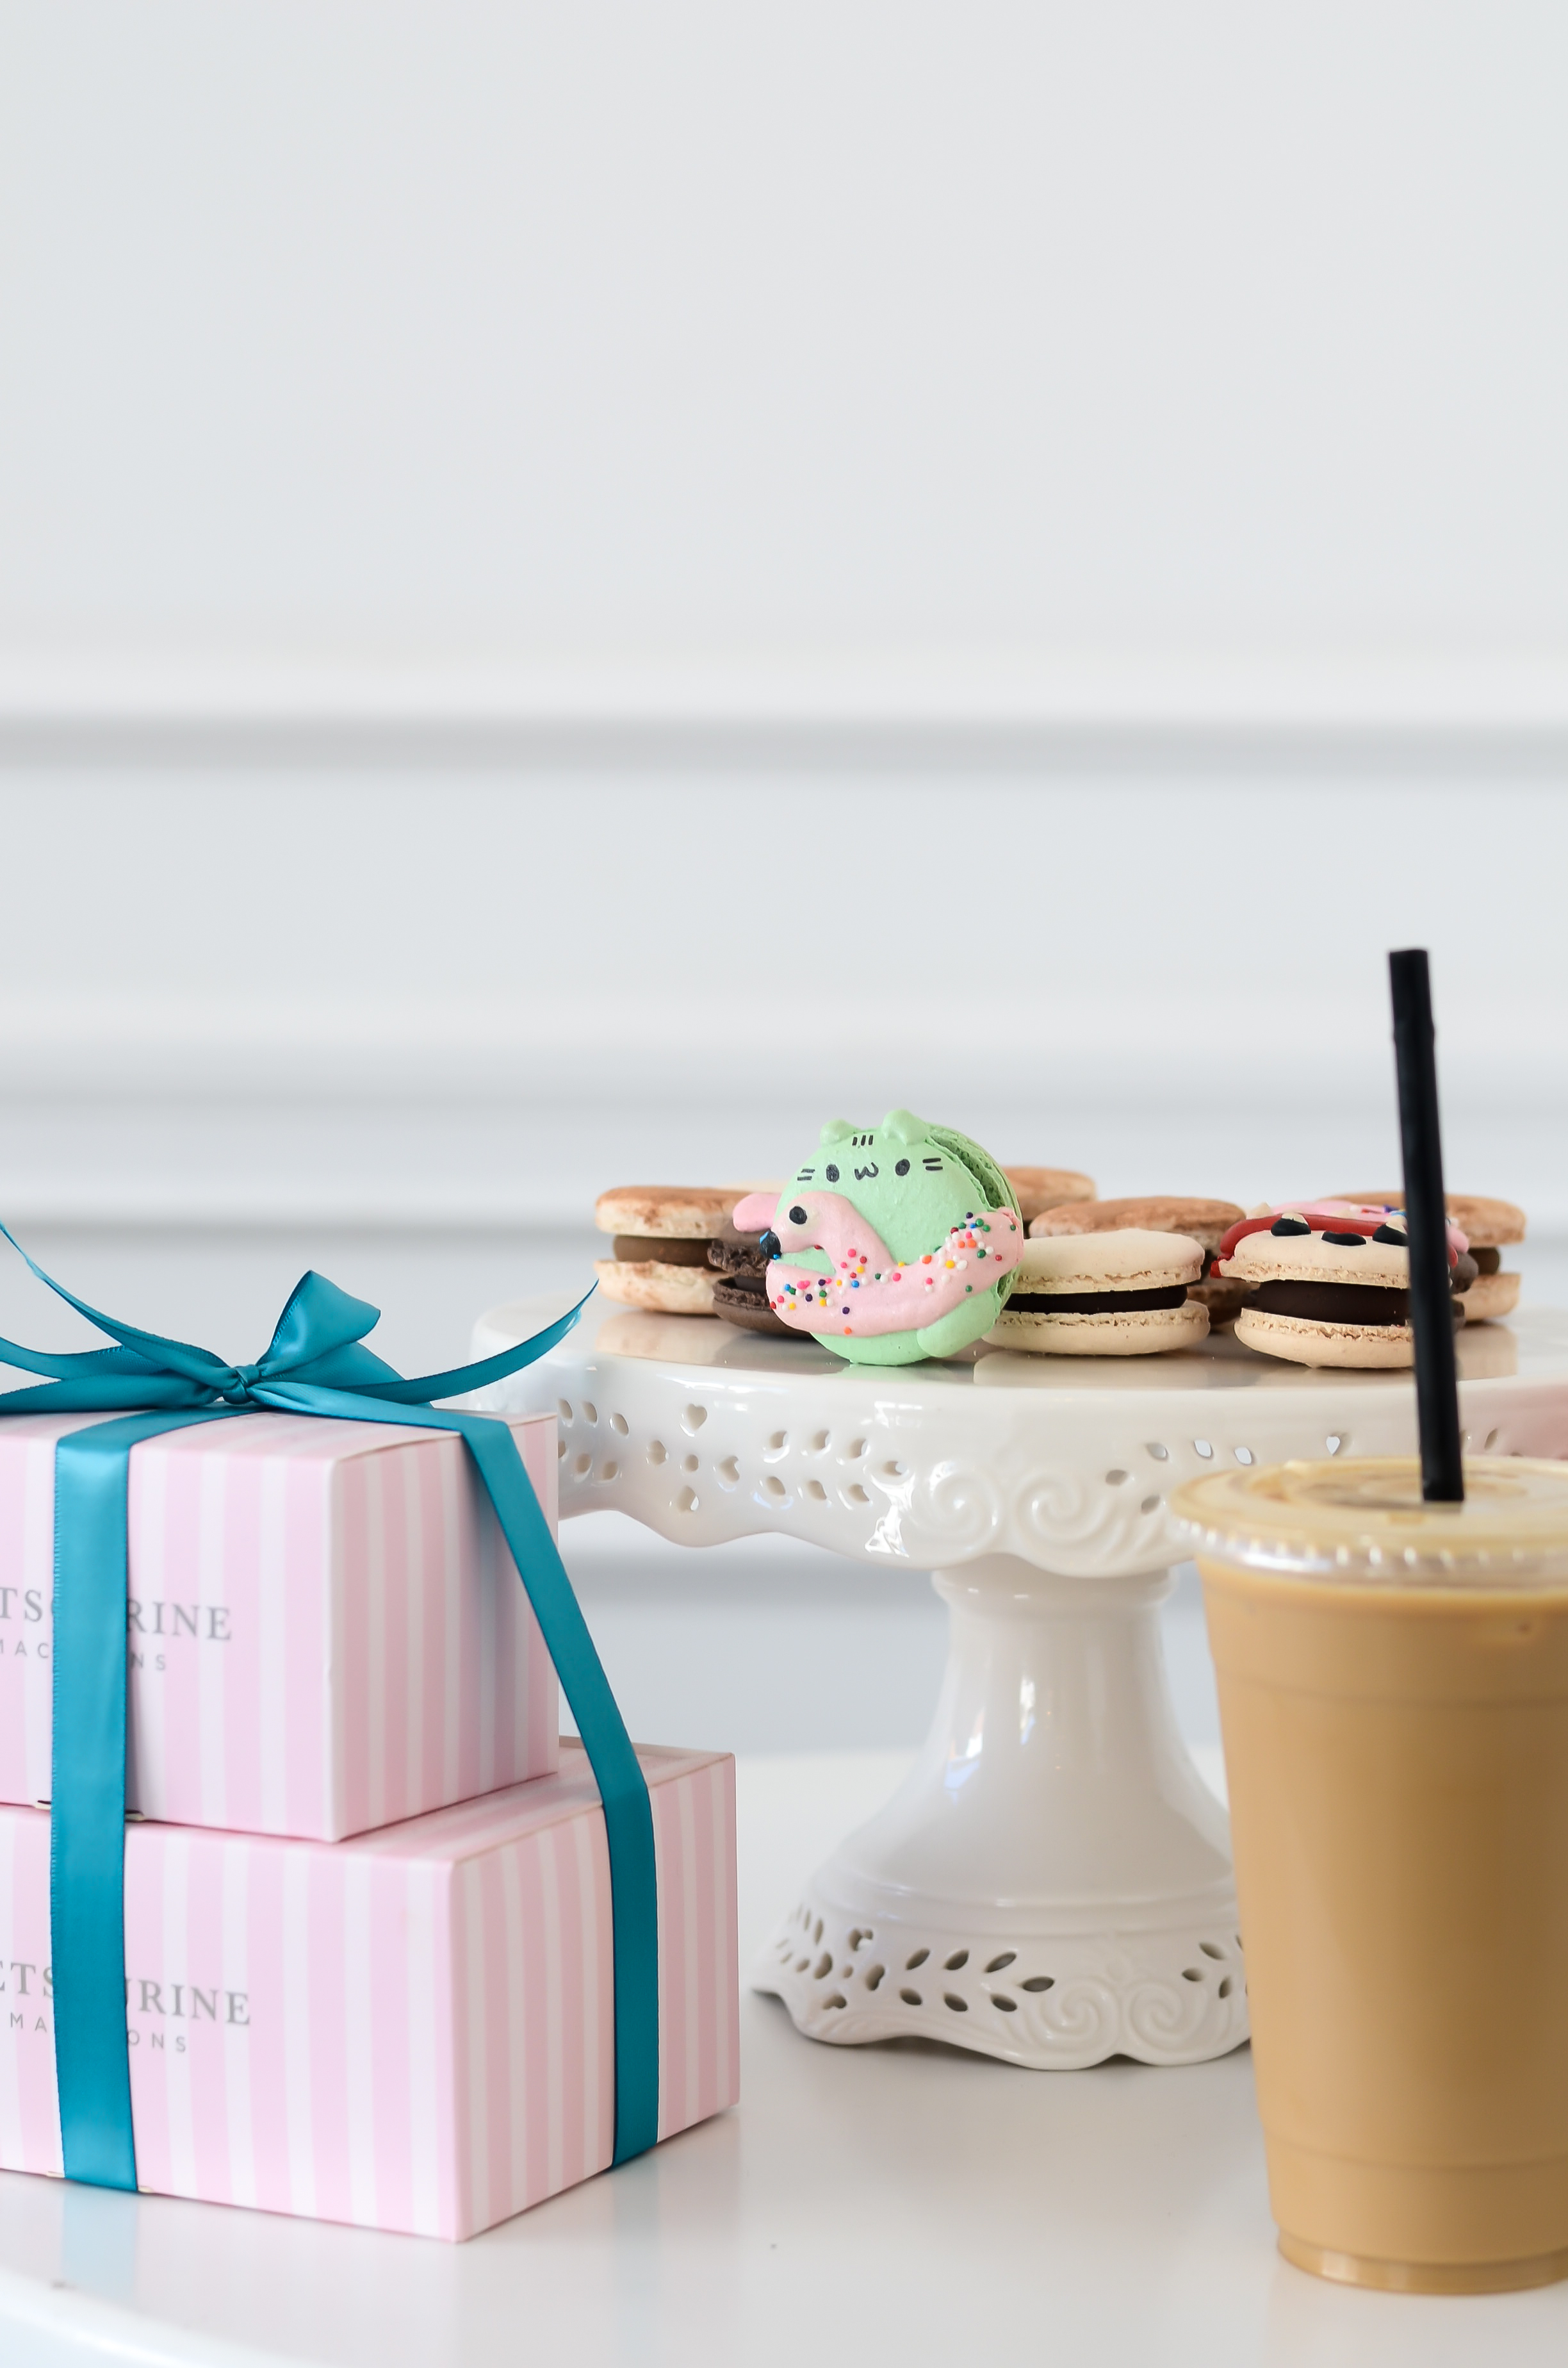 May2018KetsourineMacarons-2.jpg